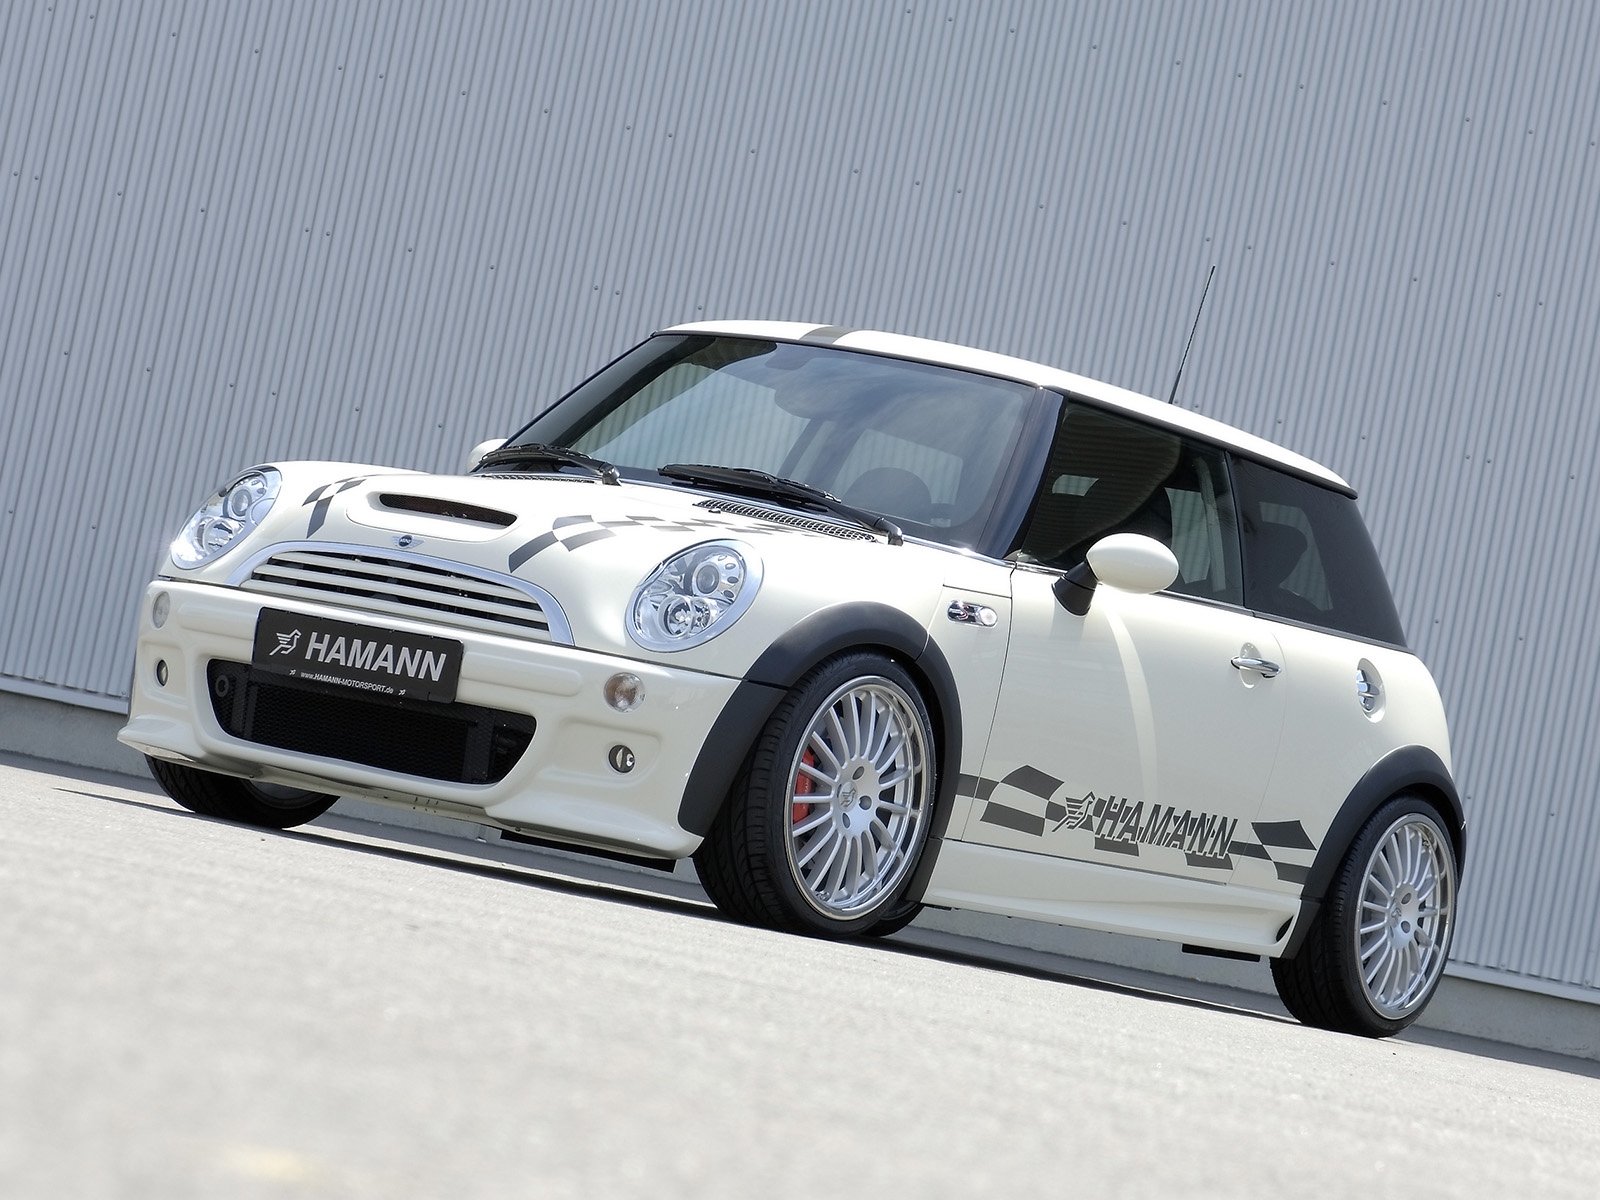 Mini Cooper Background Mini Cooper S Wallpaper 1600 x 1200 1600x1200